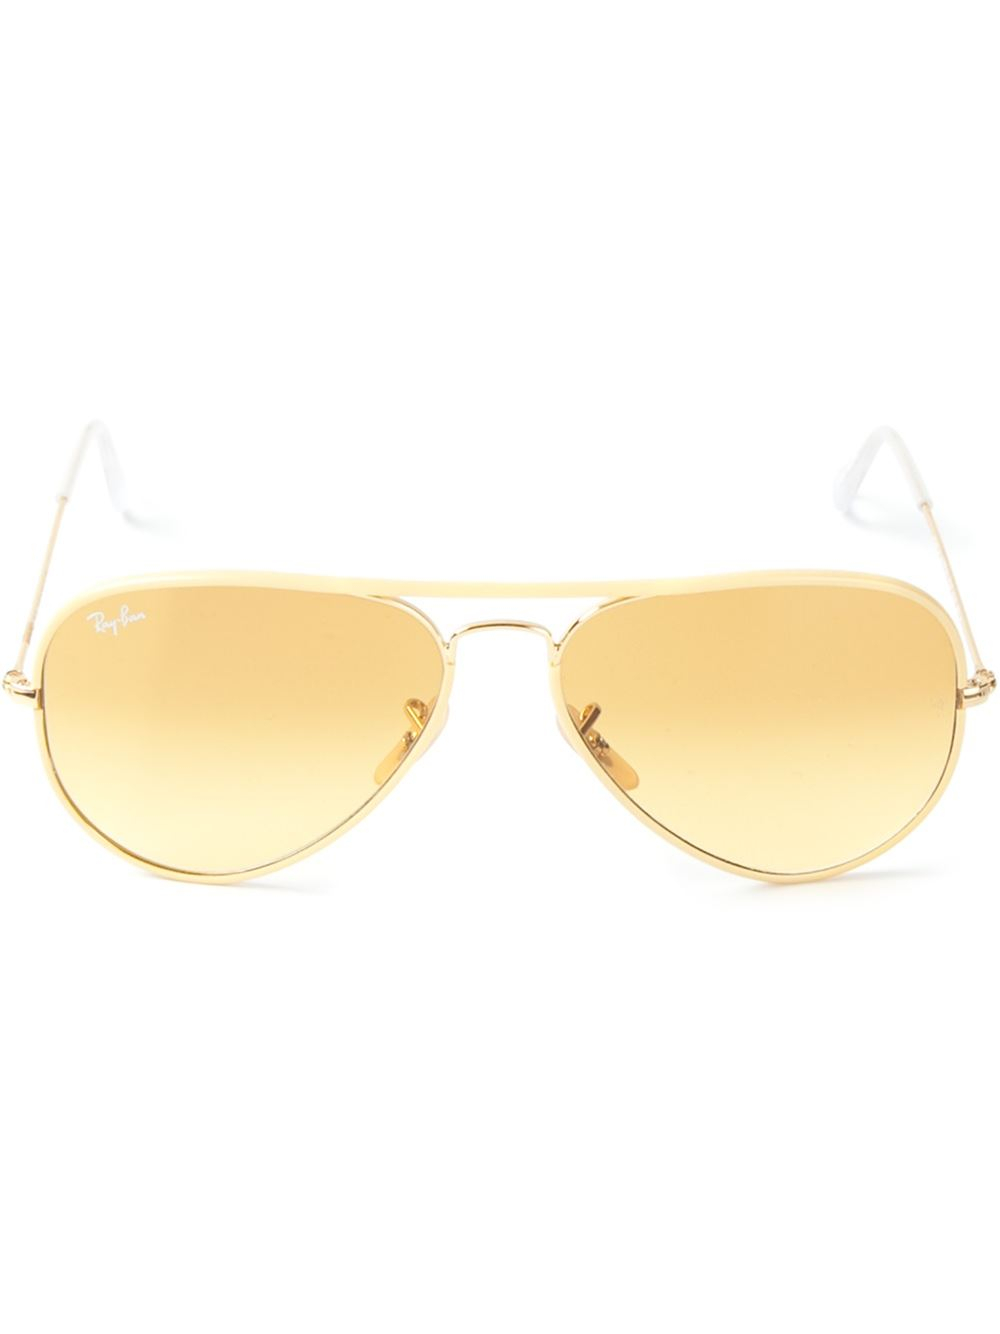 ray ban yellow aviator sunglasses  ray ban yellow aviator sunglasses